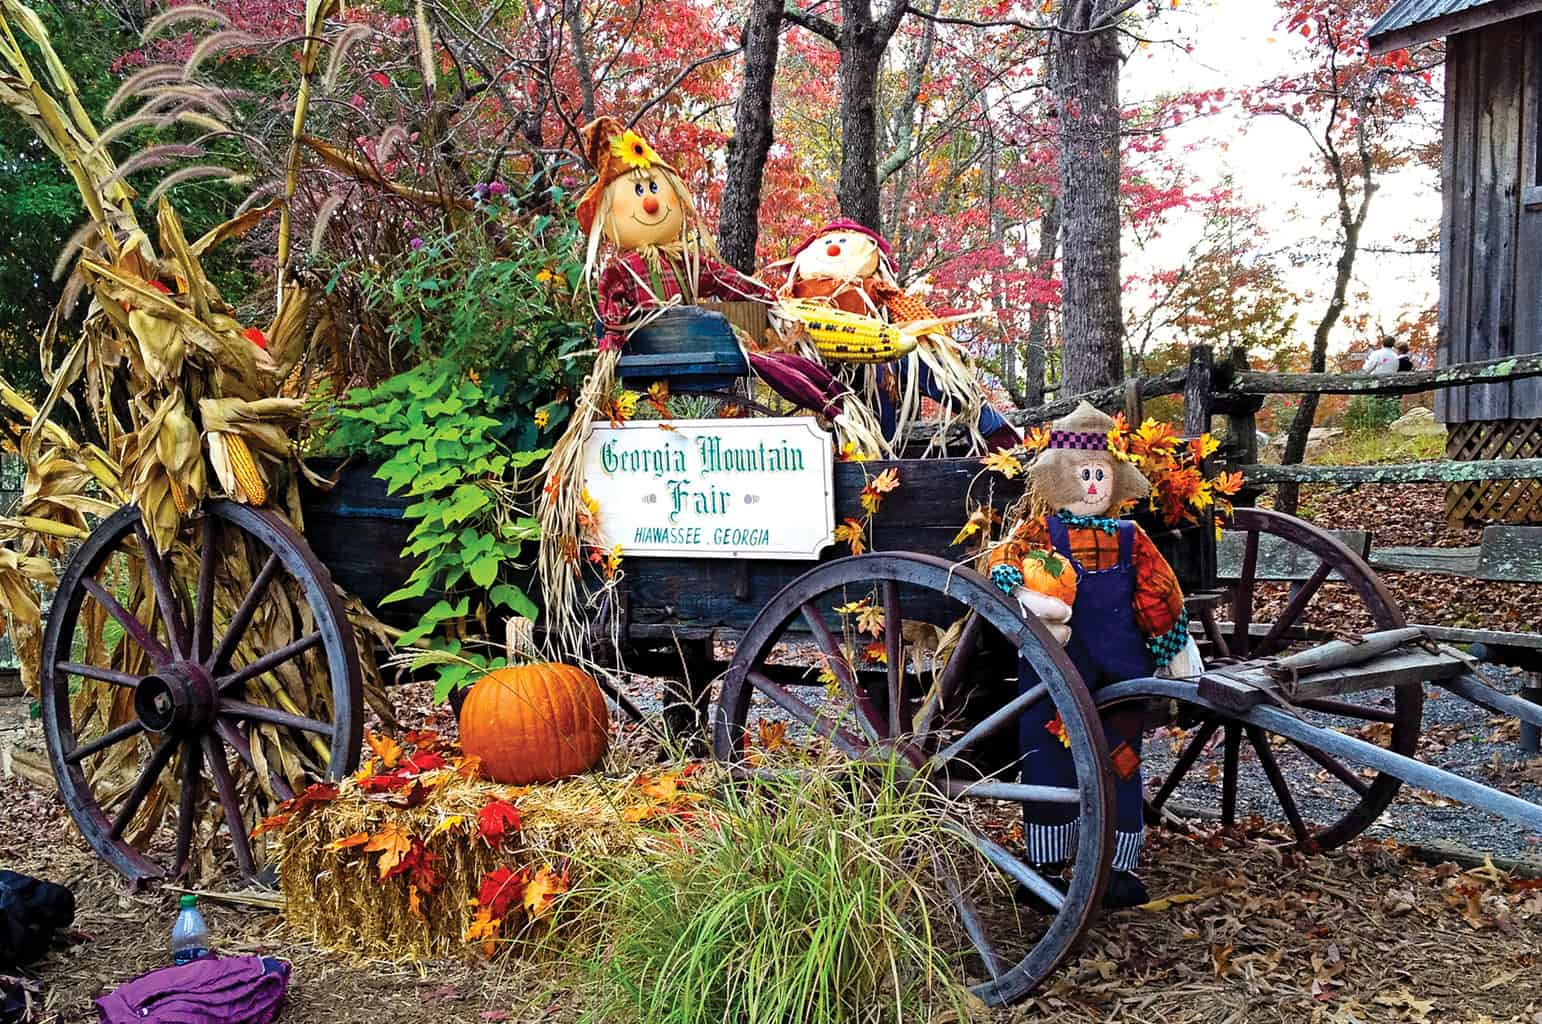 Georgia Mountain Parkway - Old-fashioned buggy welcomes visitors to the Georgia Mountain Fair in Hiawassee, Georgia